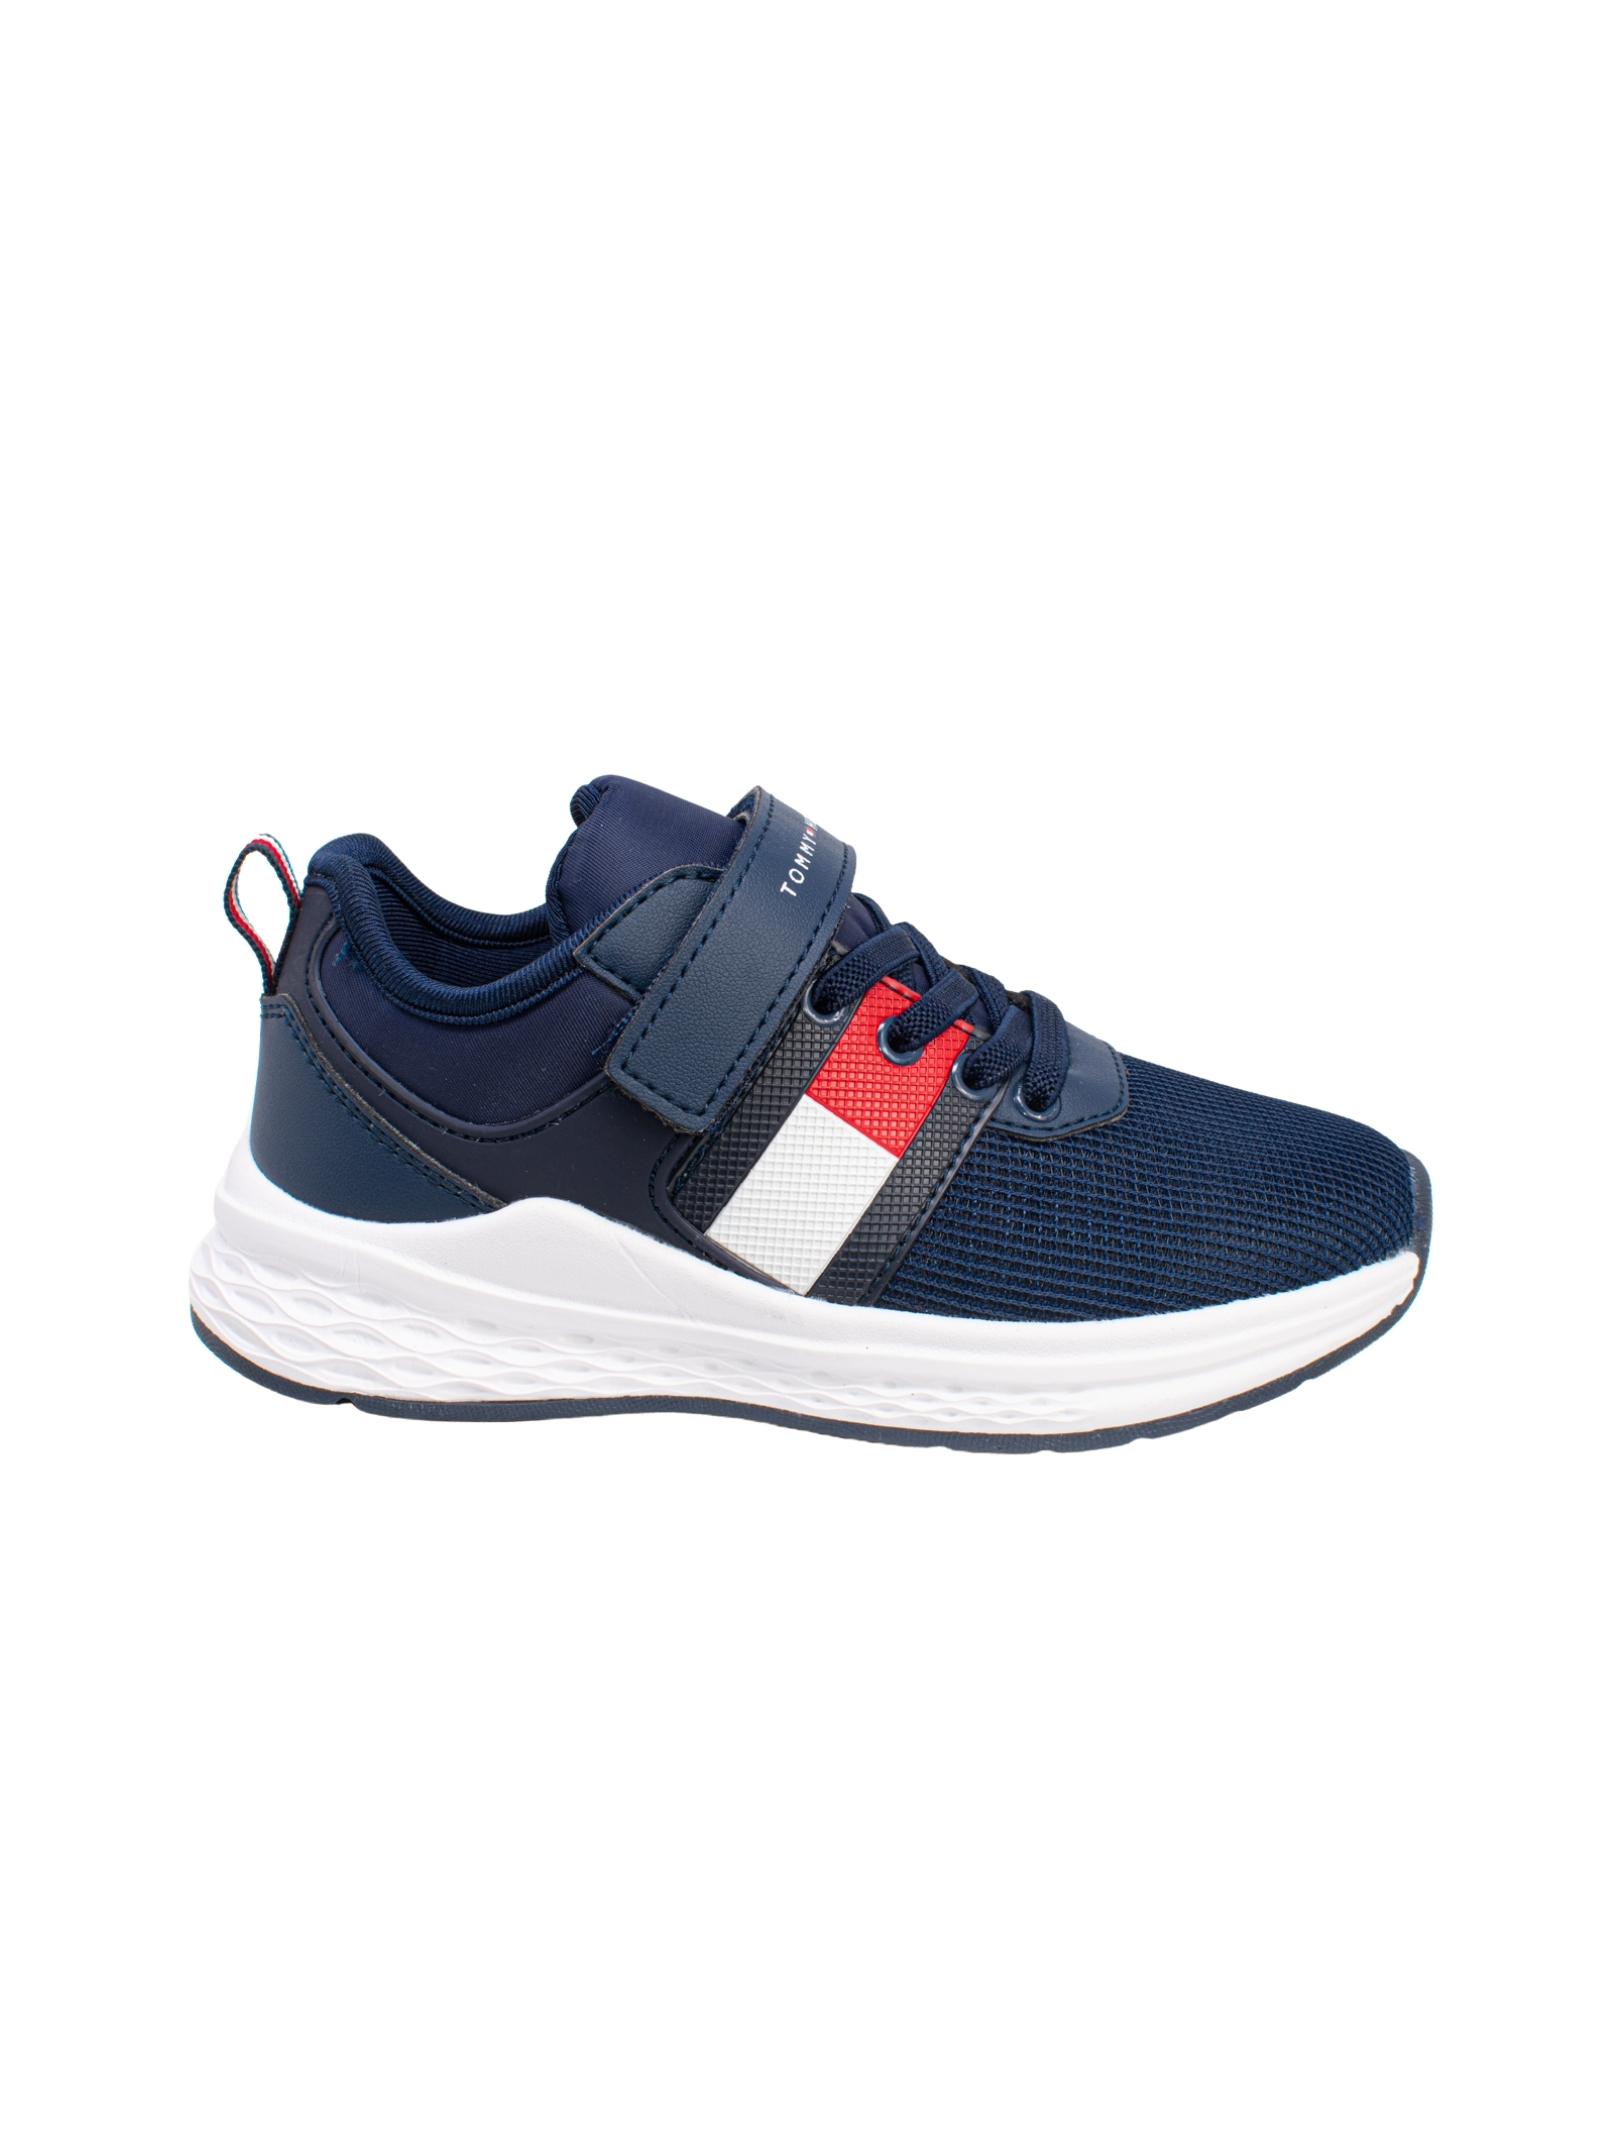 Sneakers Bambino Lace-Up TOMMY HILFIGER KIDS | Sneakers | T3B4311010738800BLU